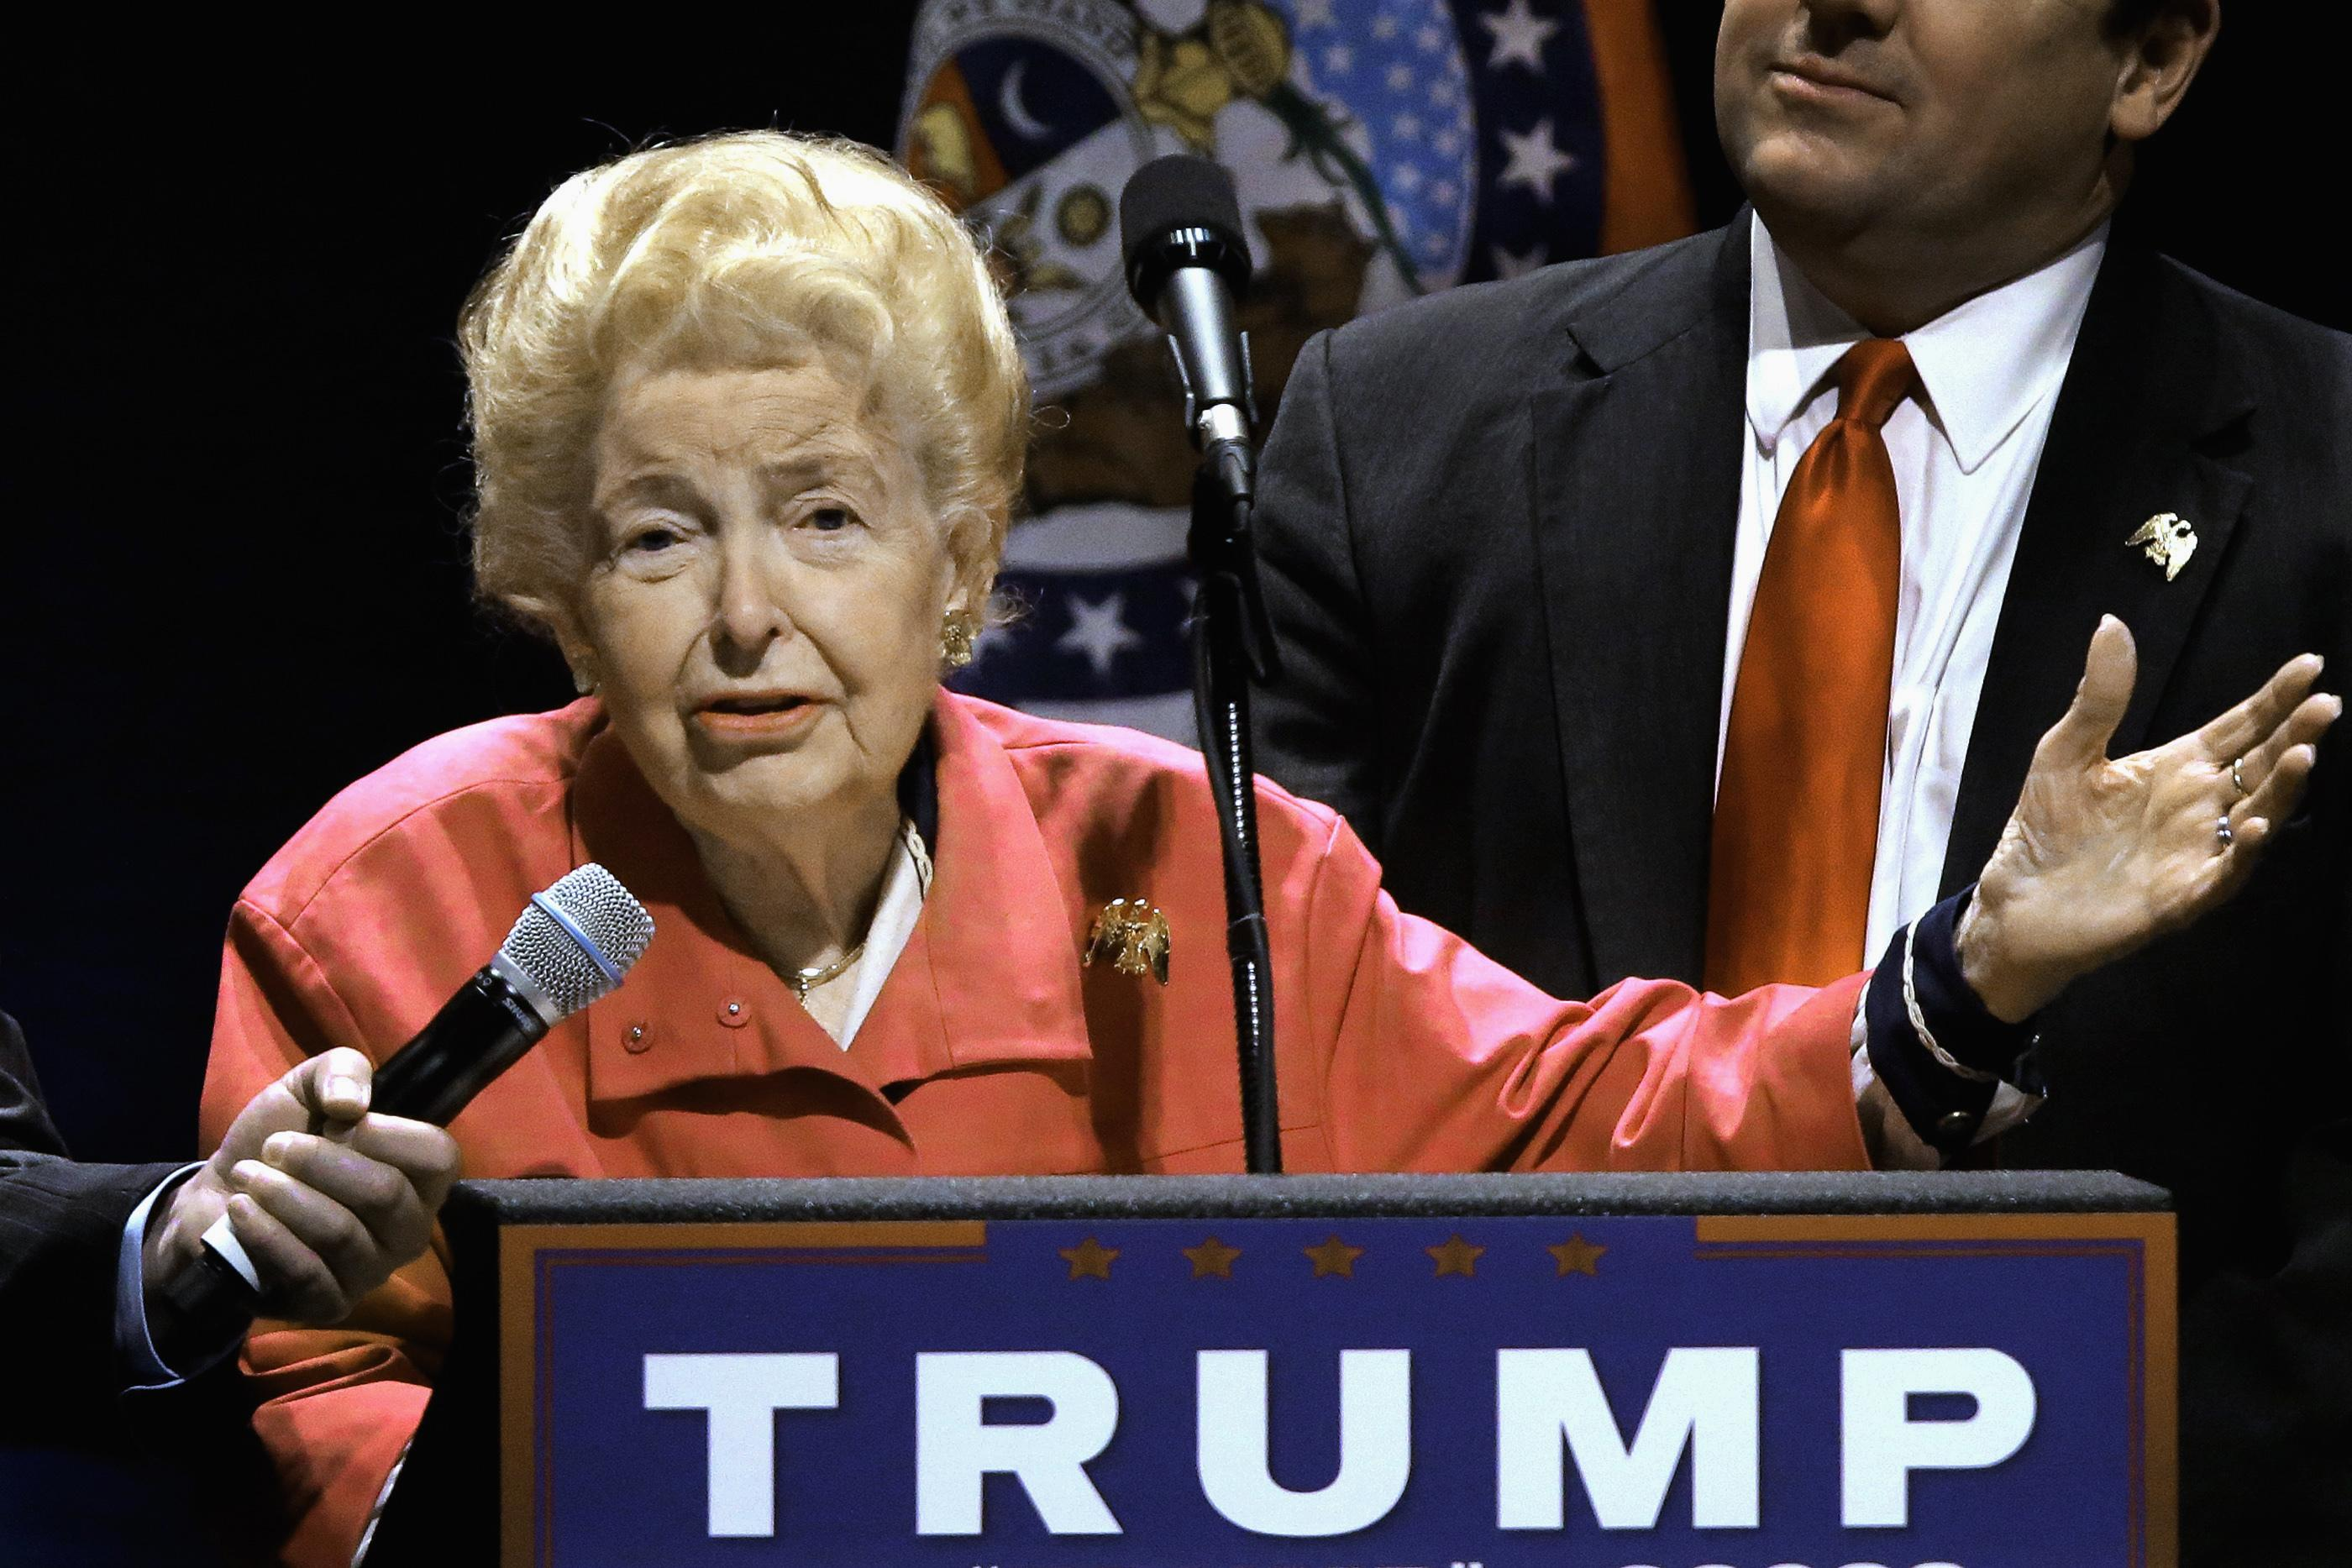 On Phyllis Schlafly's Demise at 92